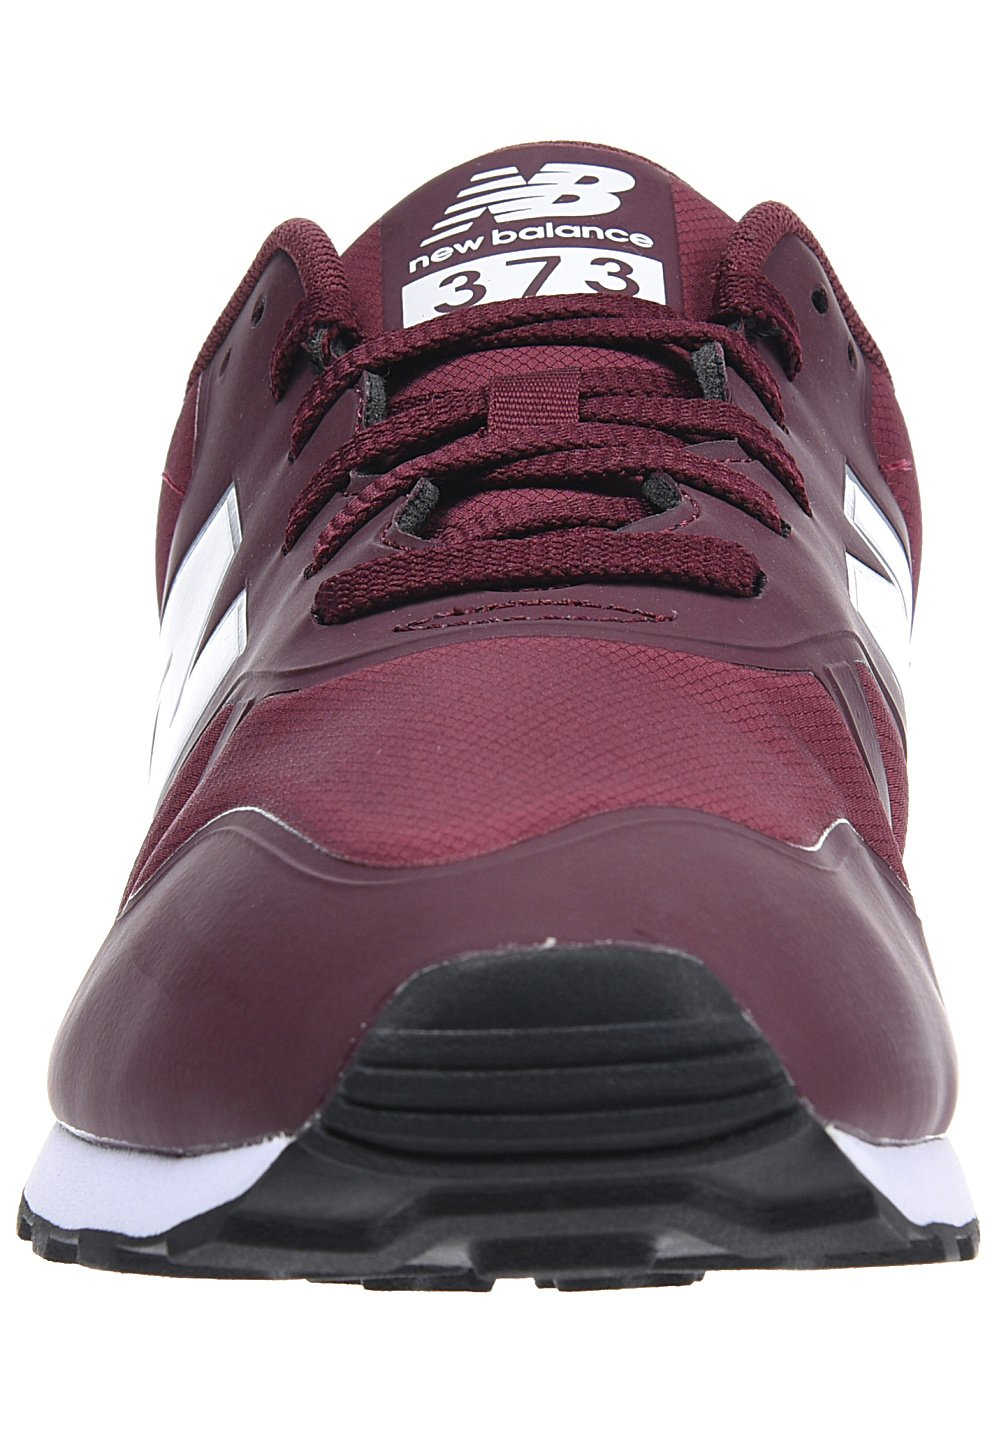 new balance md373 pw